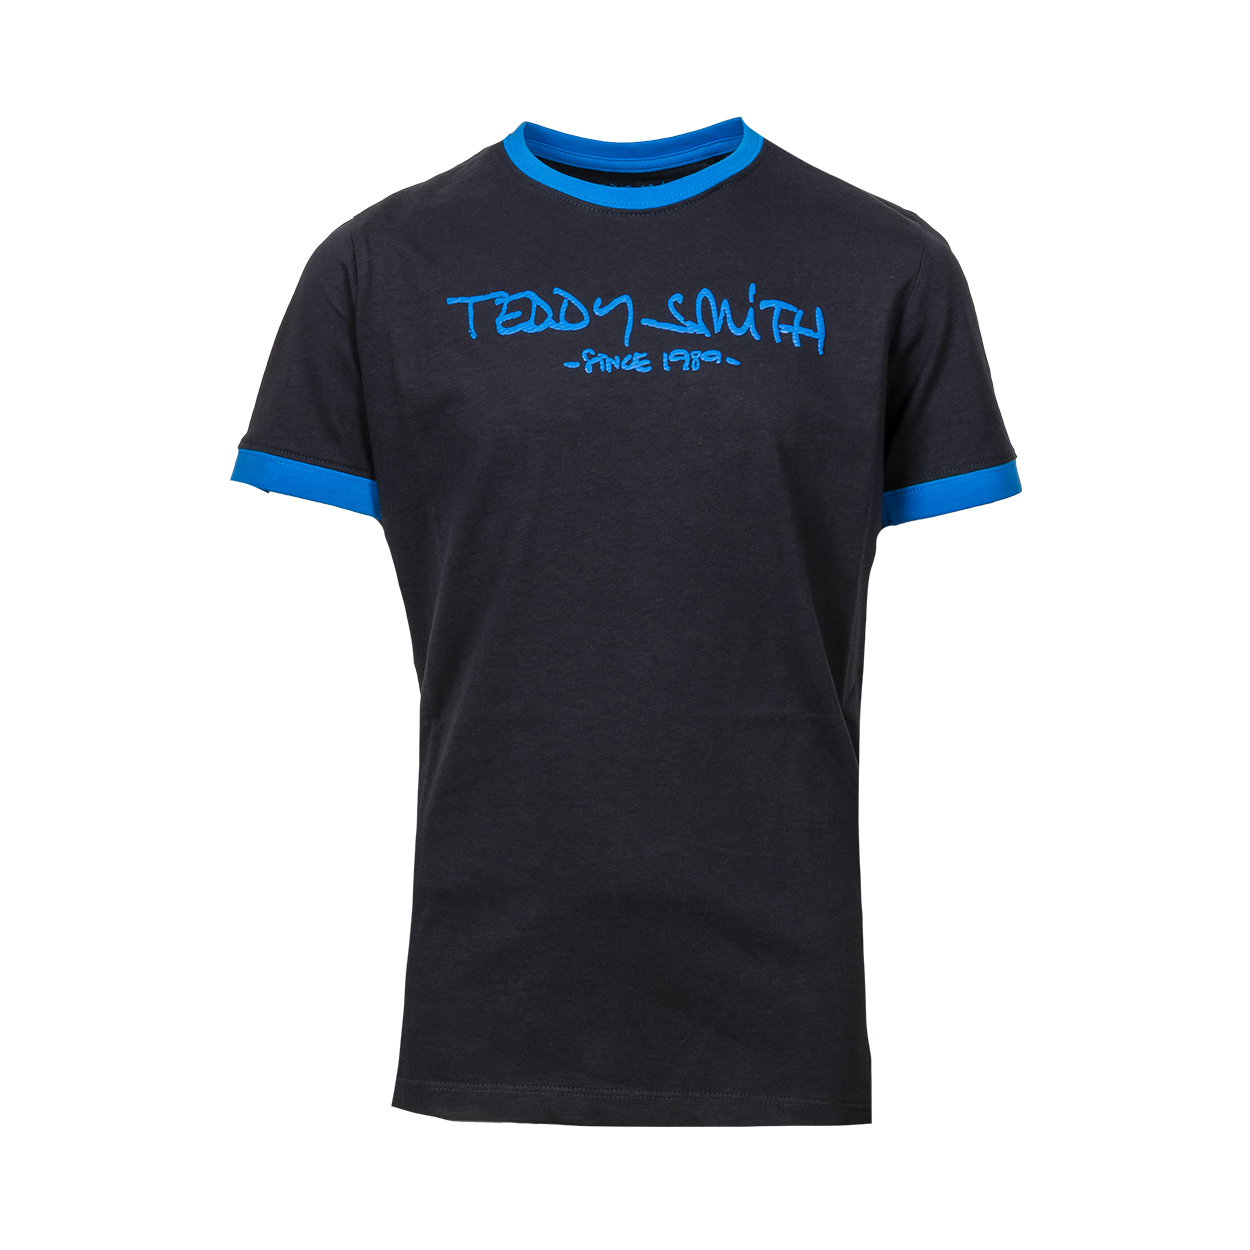 Tee-shirt col rond teddy smith ticlass 3 en coton bleu marine